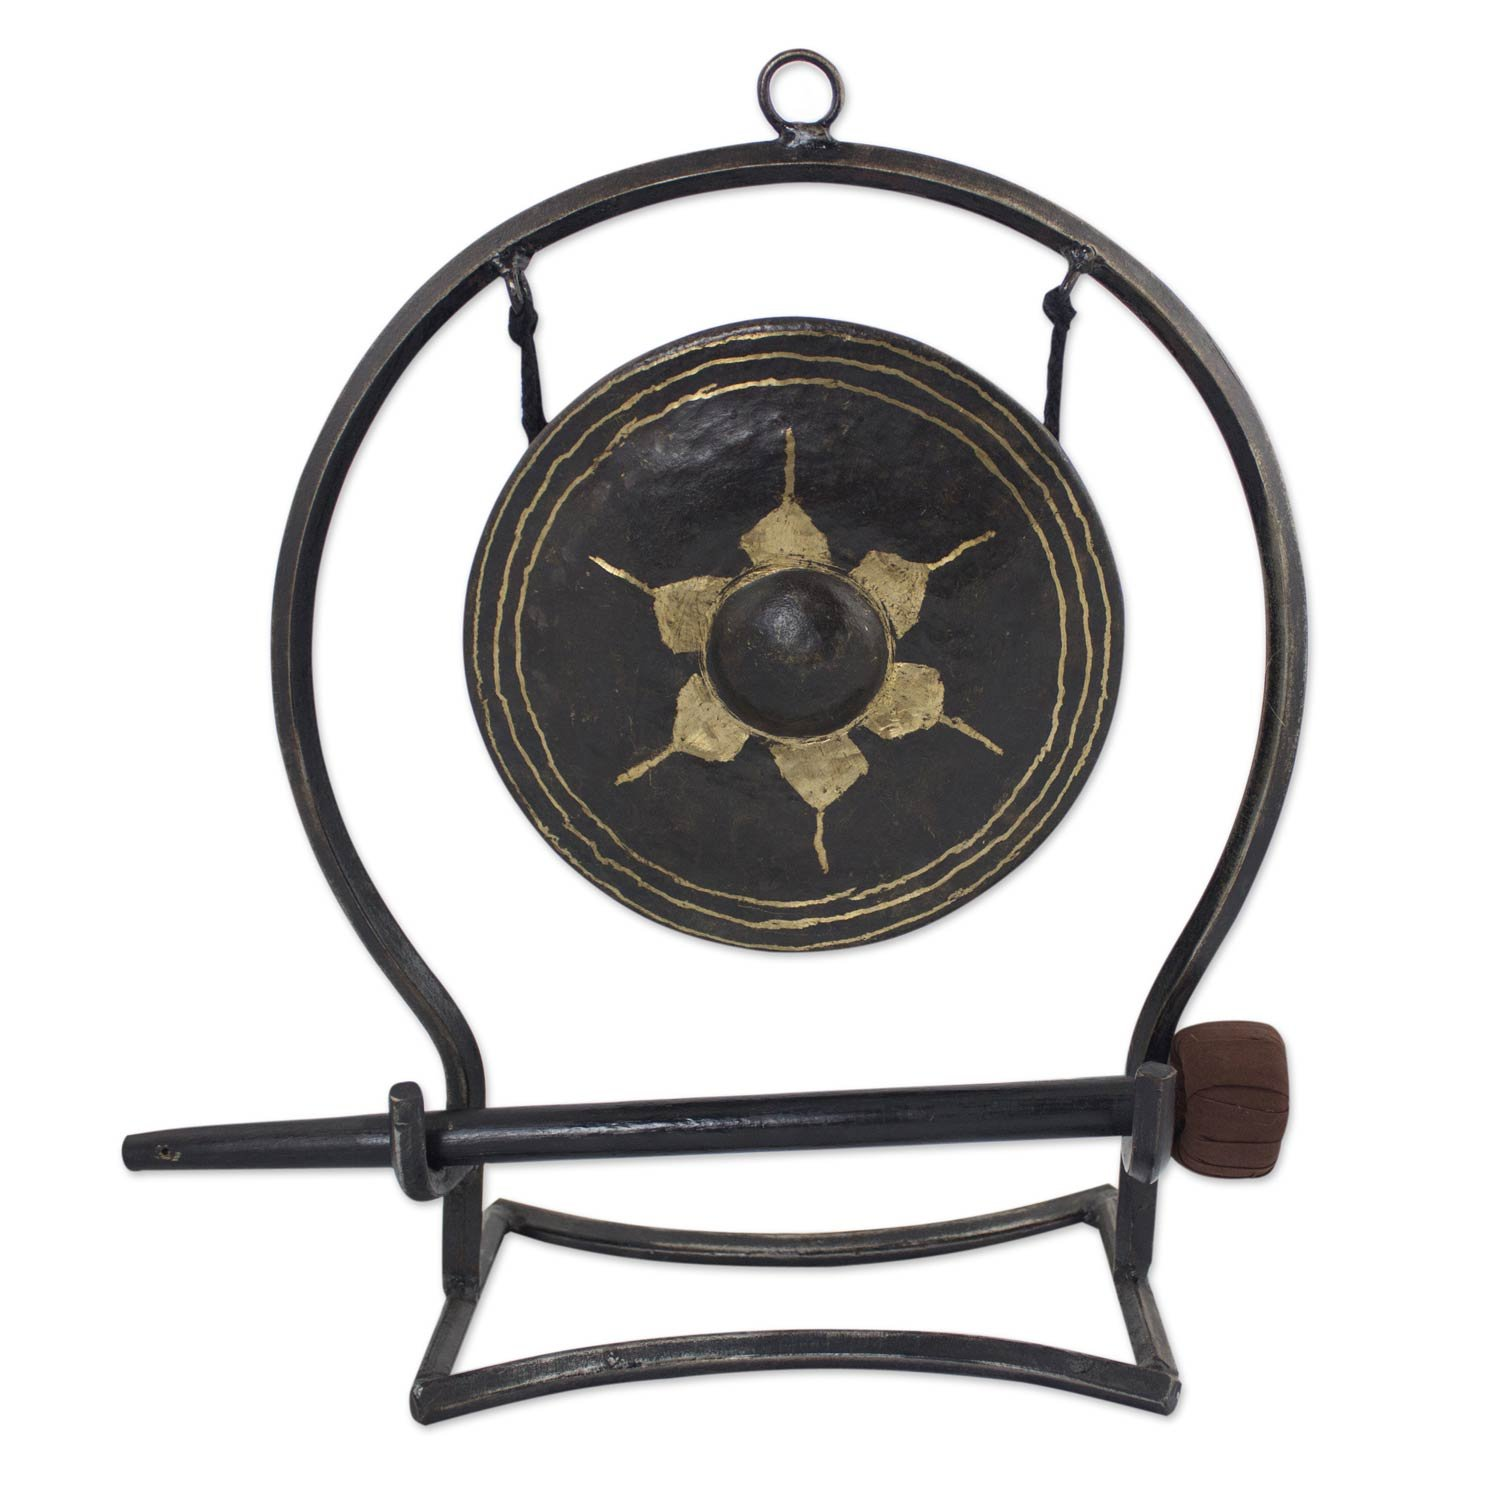 NOVICA Iron and brass gong, Large, Thai Harmony by NOVICA